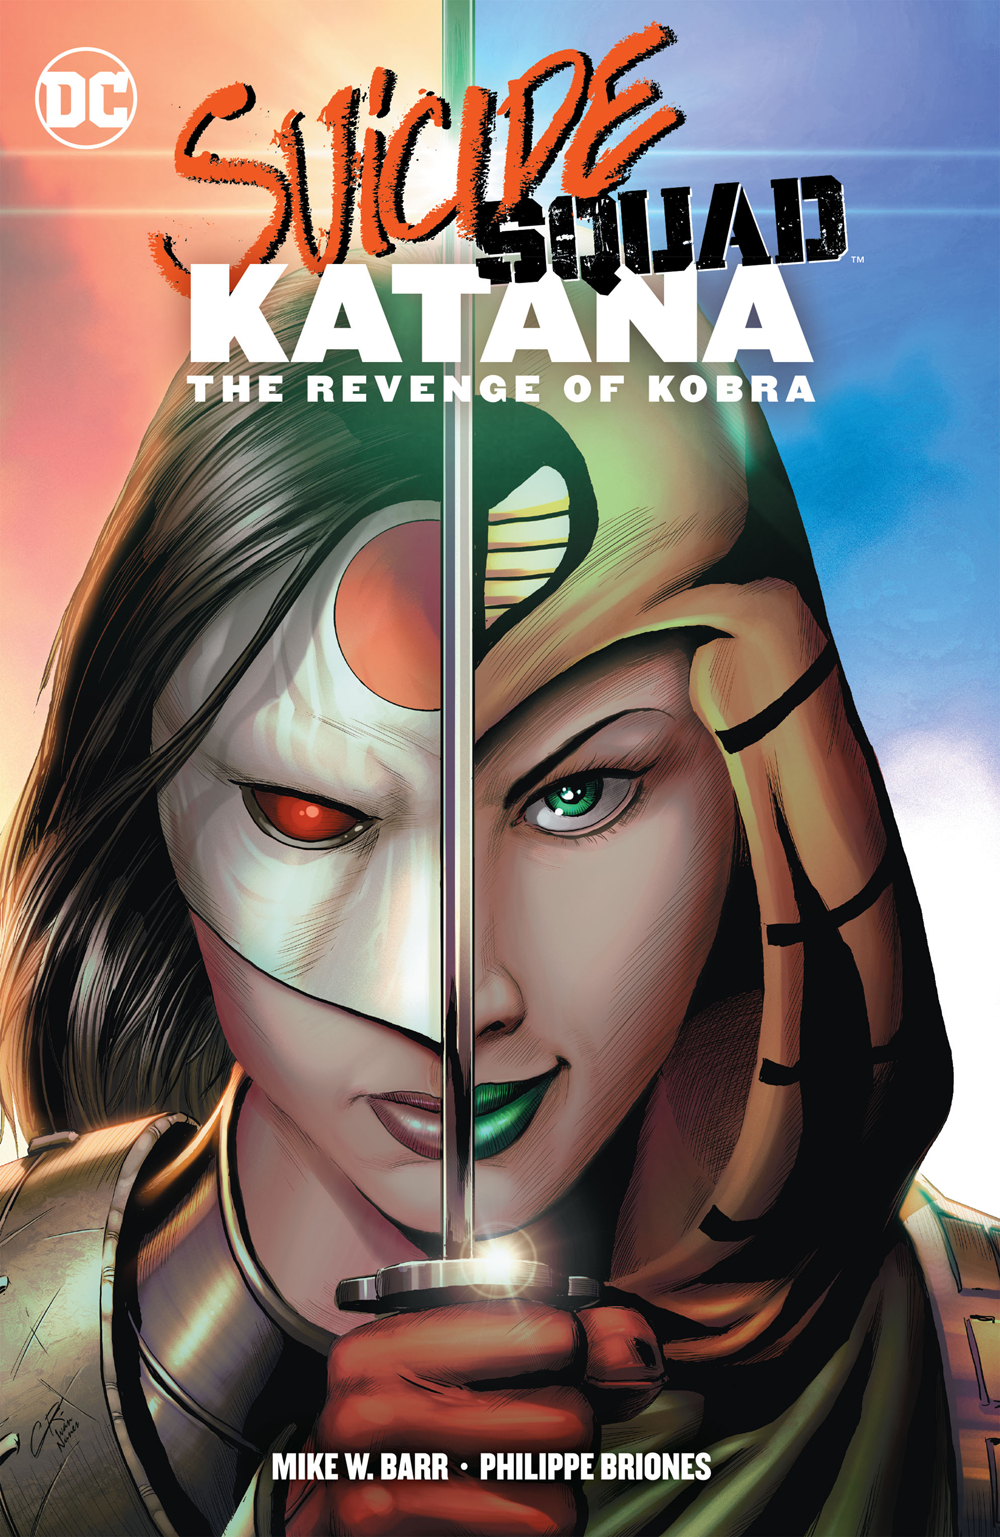 SUICIDE SQUAD KATANA THE REVENGE OF COBRA TP